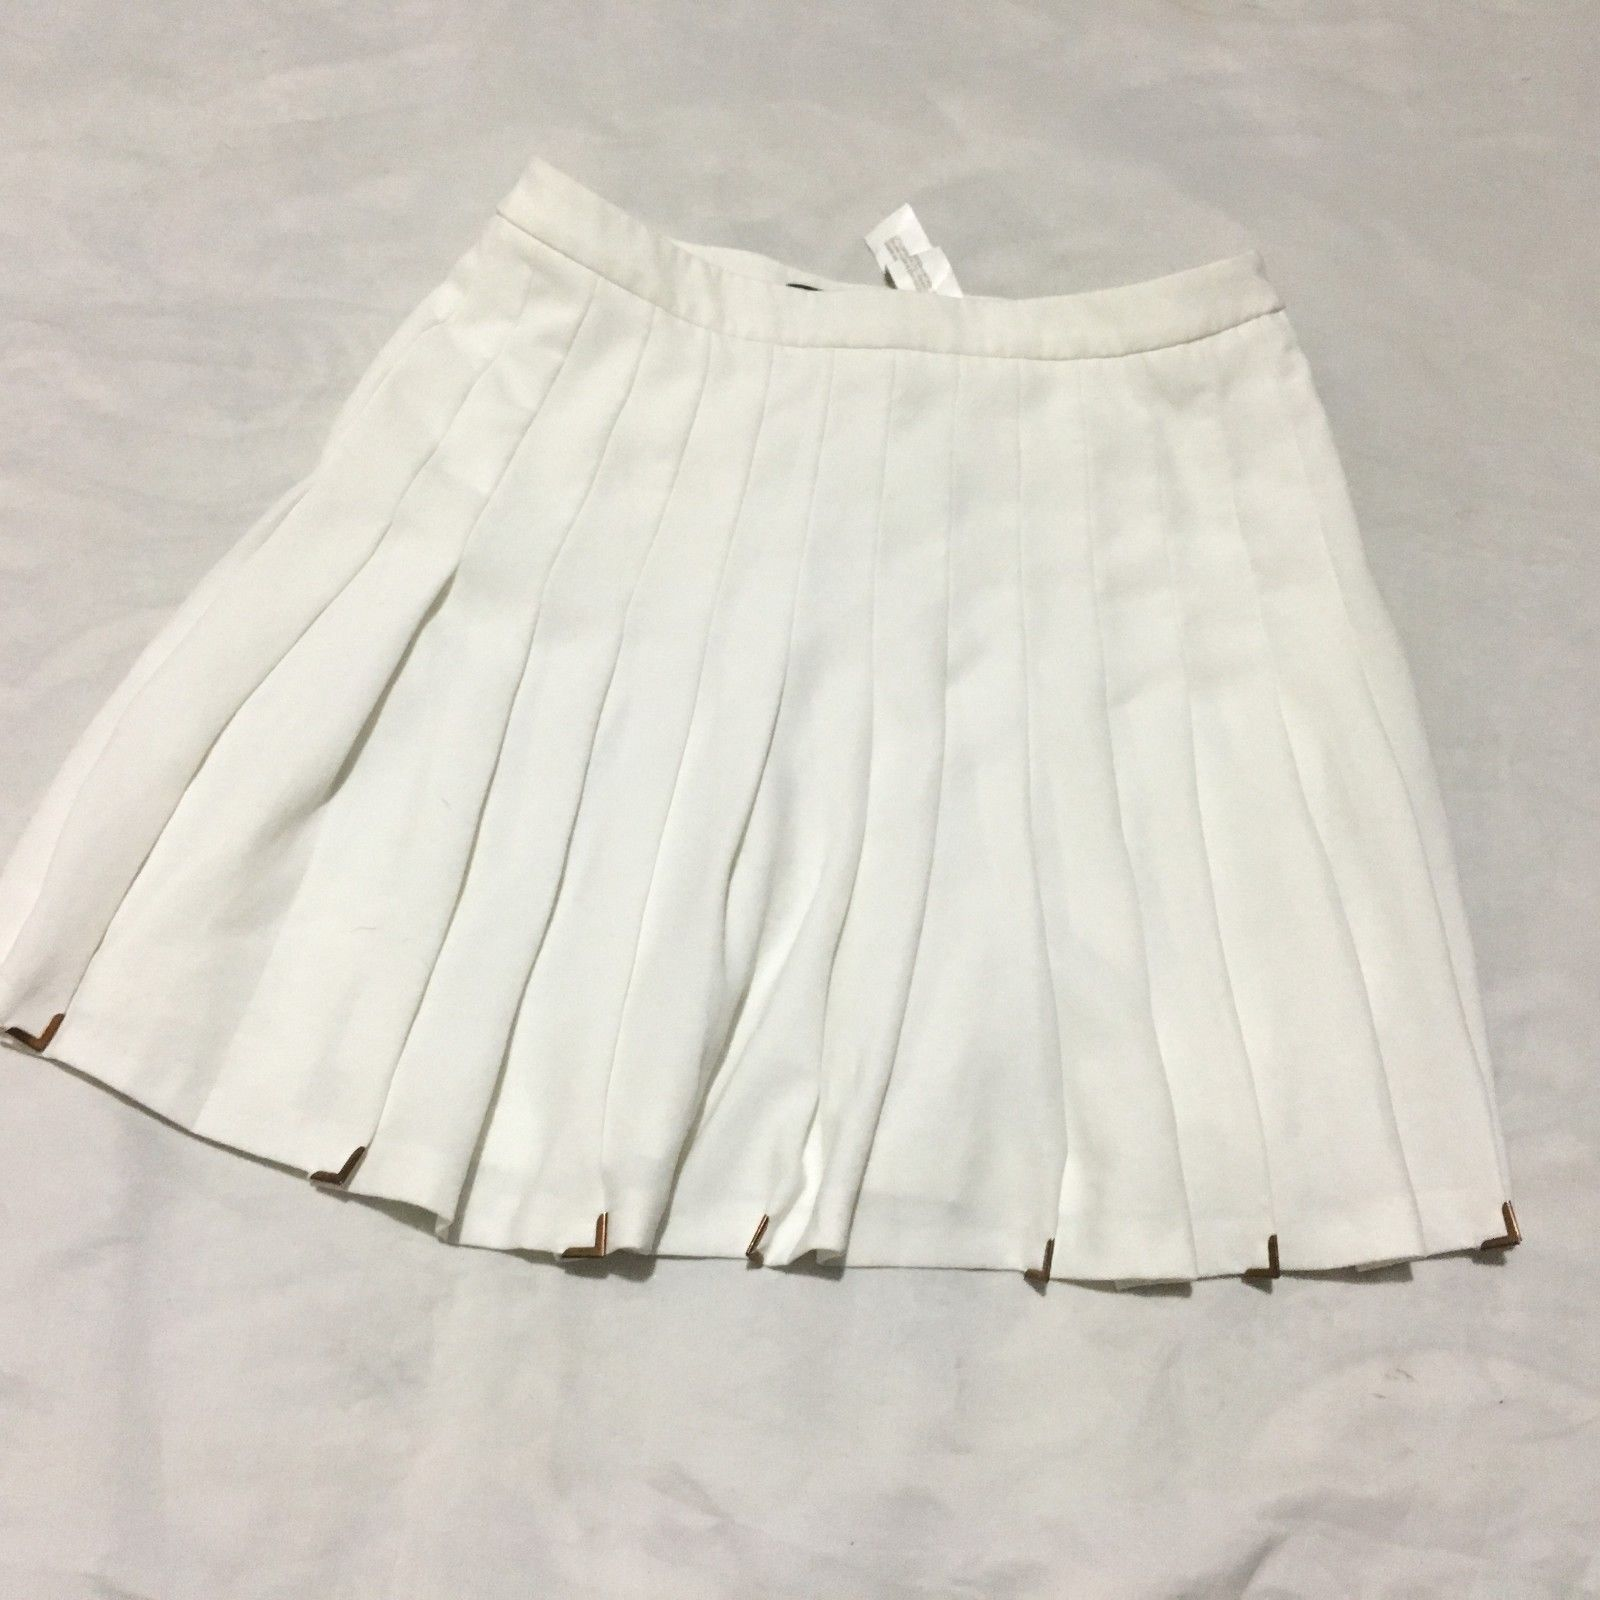 a21925a3e8 Zara Woman White Pleated Mini Skirt Womens and 50 similar items. S l1600